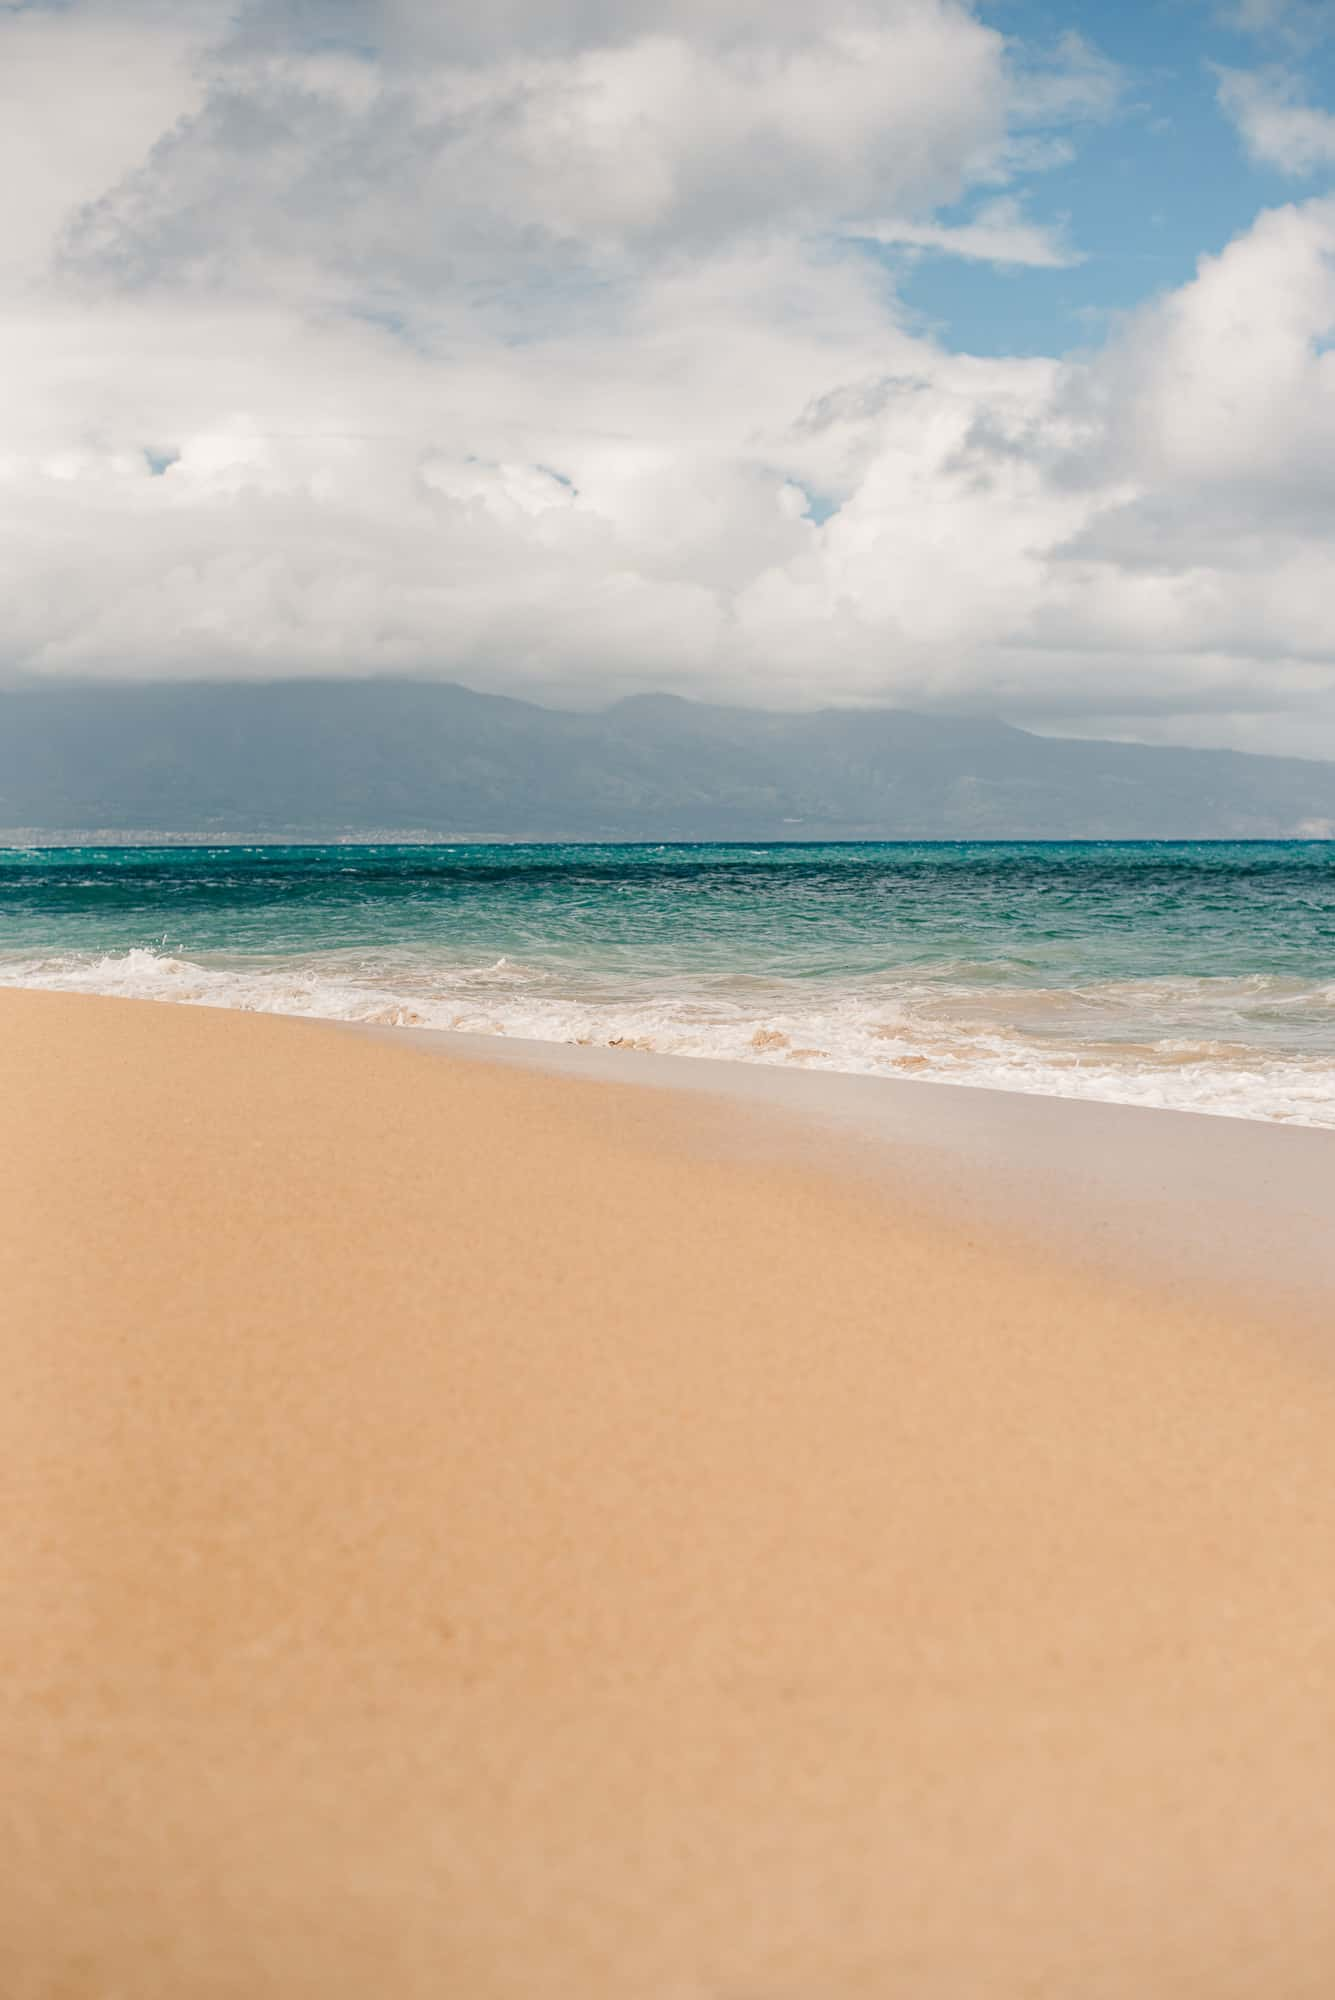 view of the beach in maui on a partly cloudy day